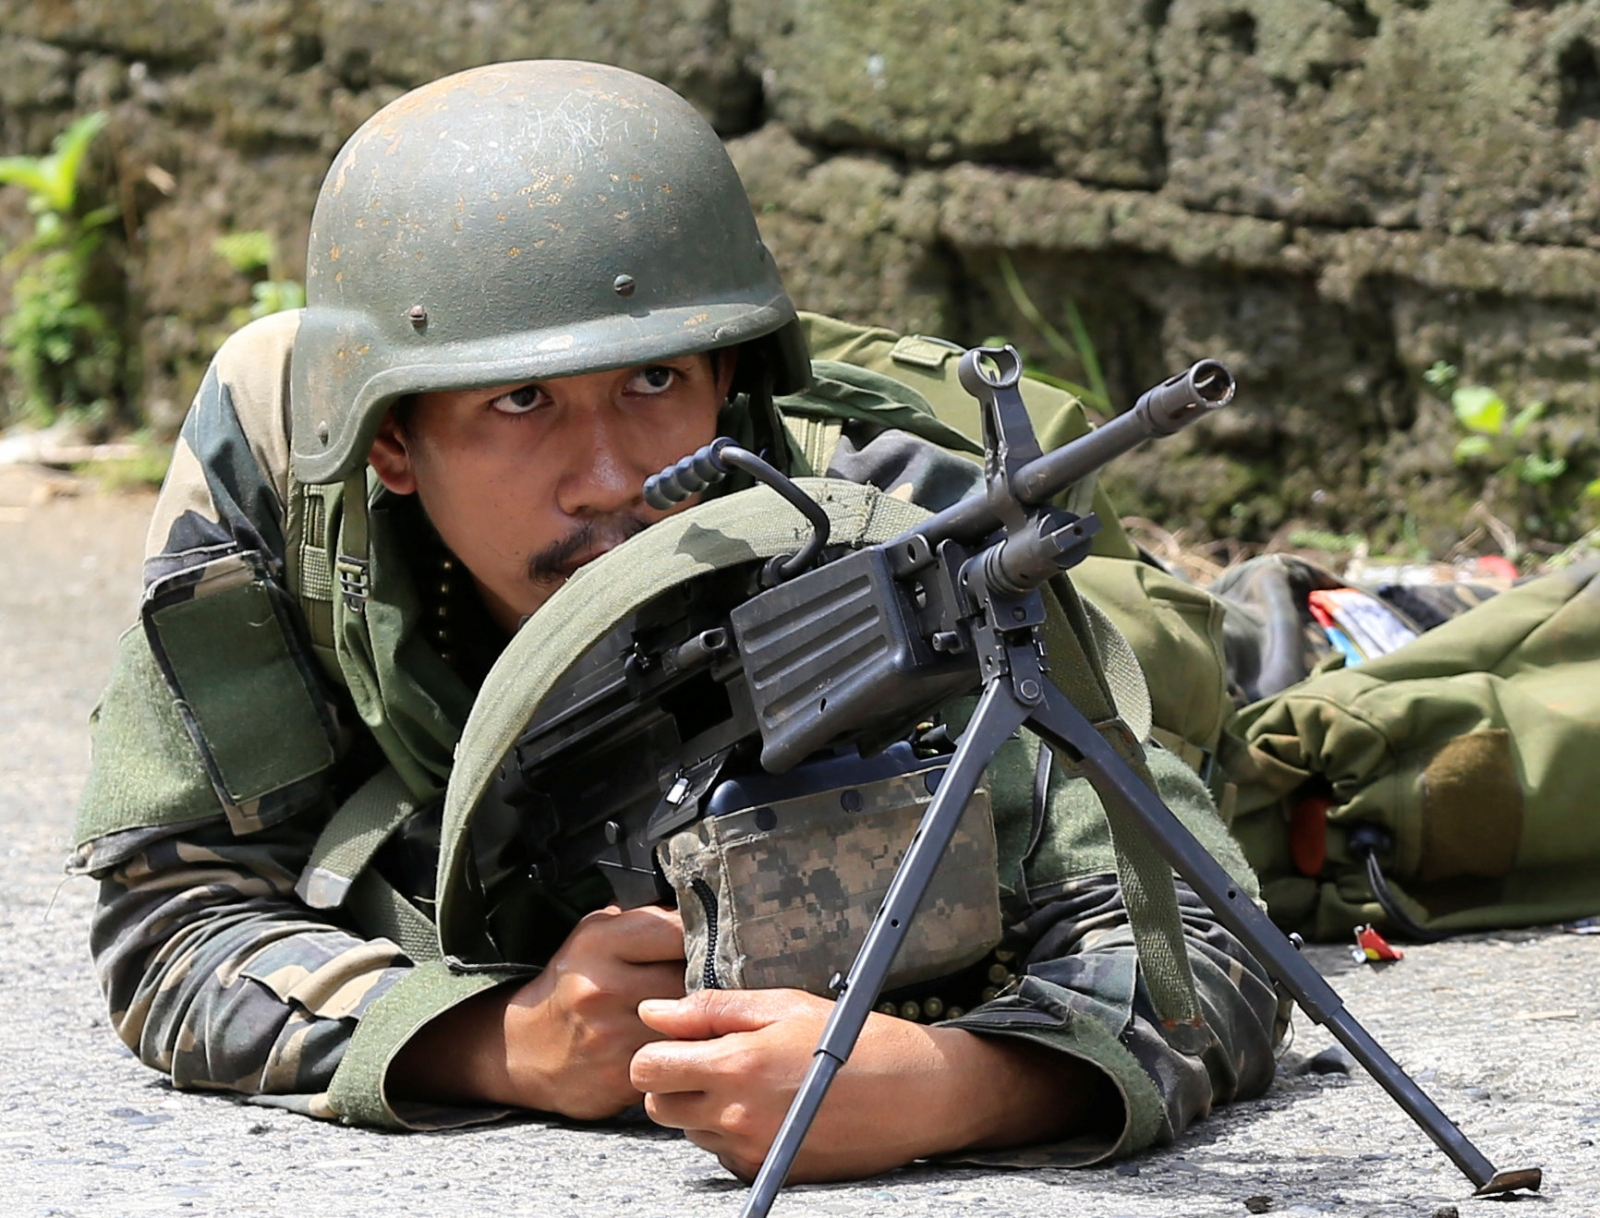 Philippines forces make gains in southern city under siege